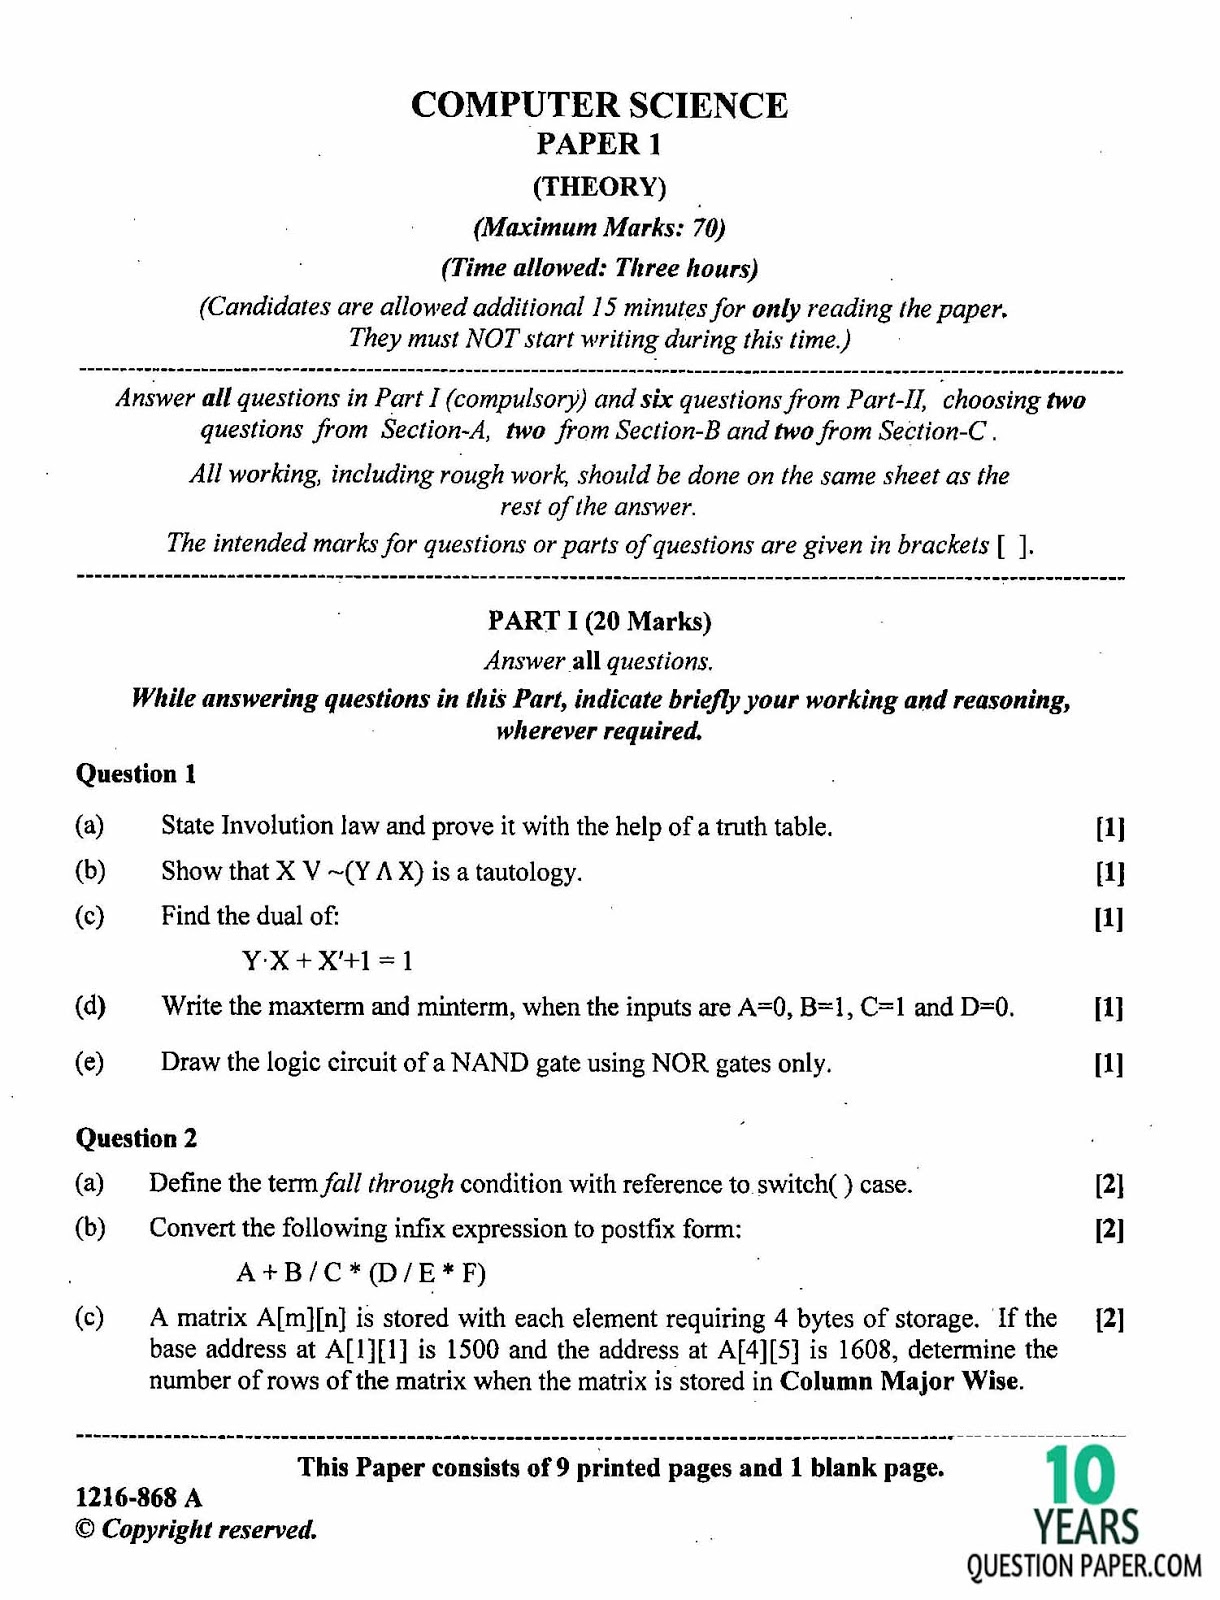 018 Research Paper Computer Science Papers Free Isc Science2b Theory Class Xii Board Question Breathtaking Pdf Download Ieee Full